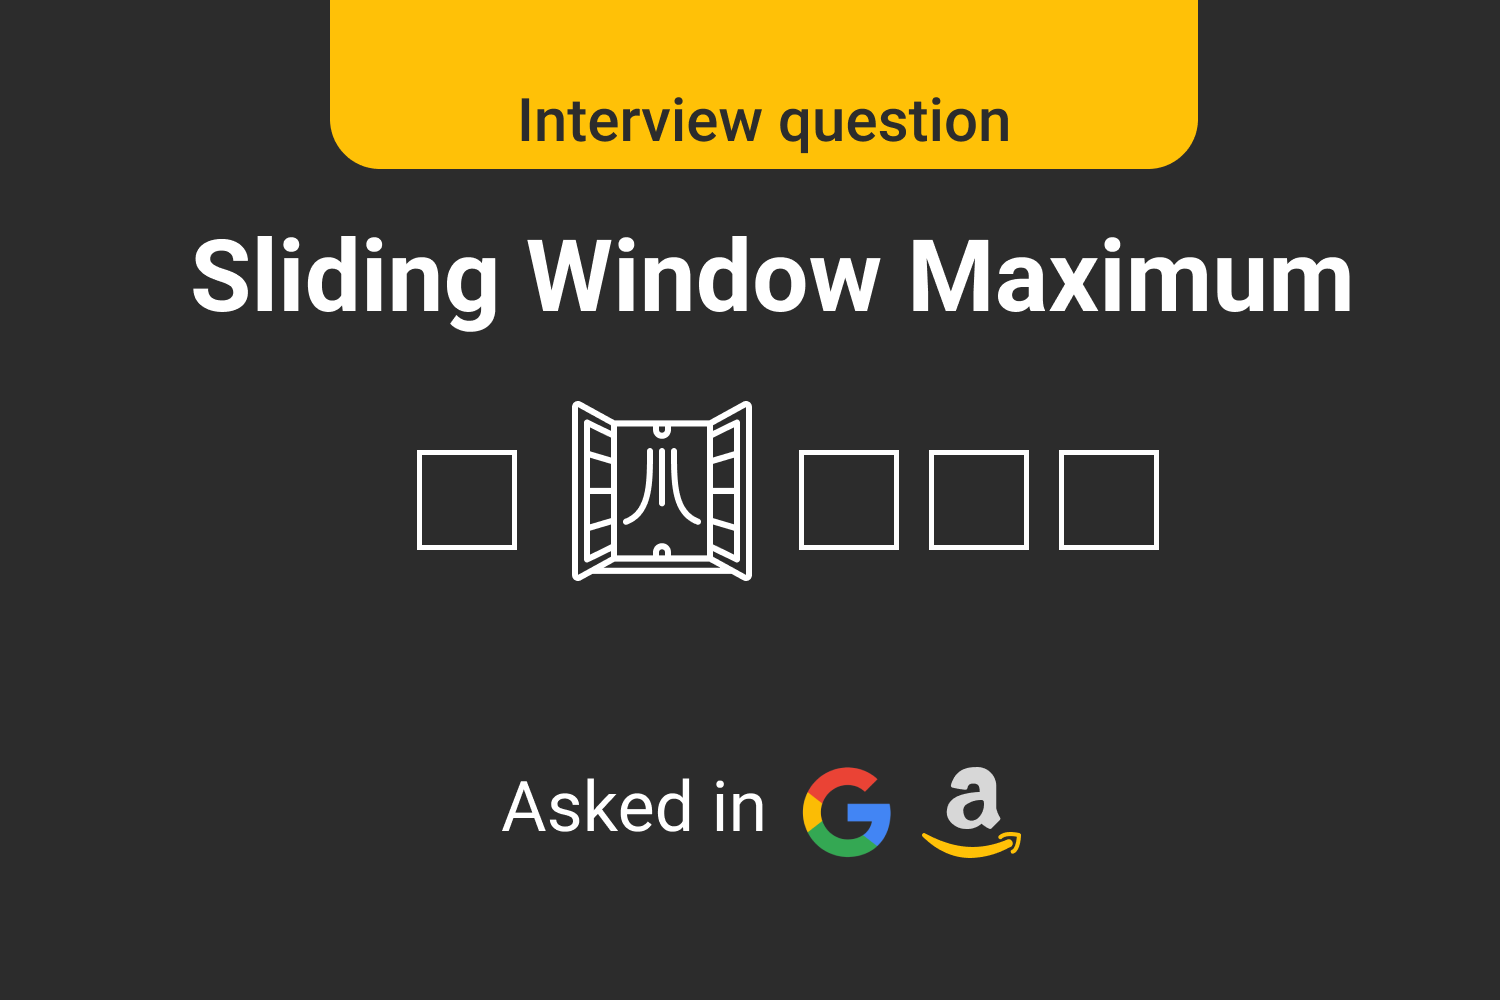 Sliding Window Maximum